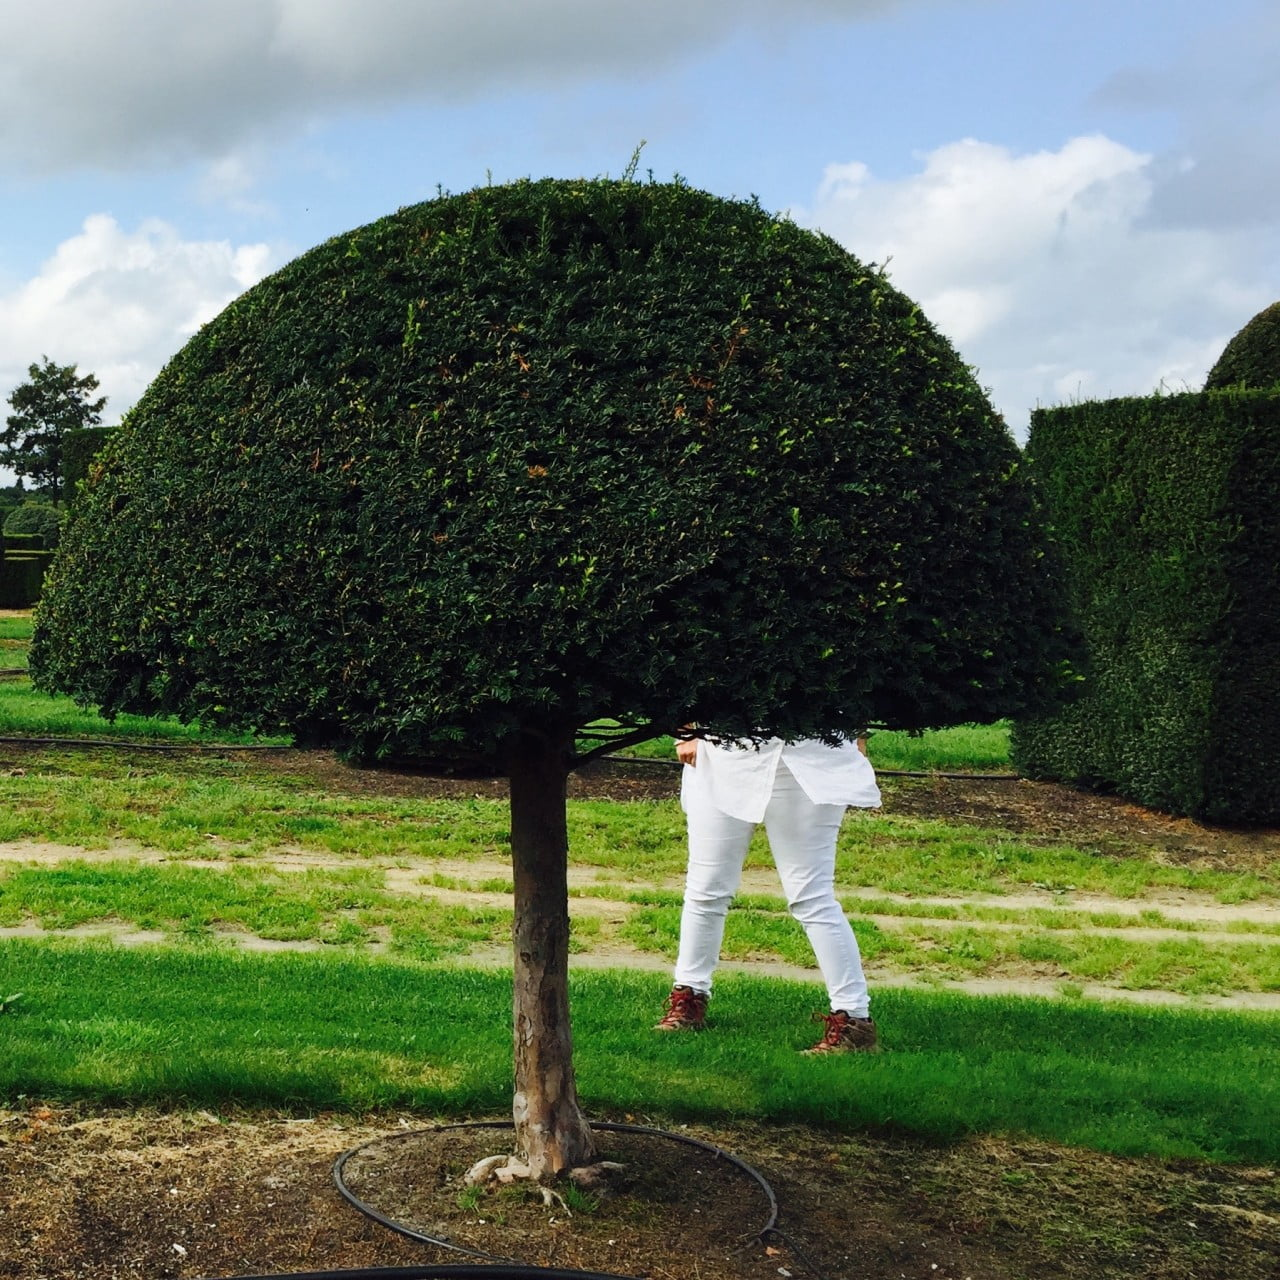 Isn't the topiary fantastic? It's growing in the field at the nursery